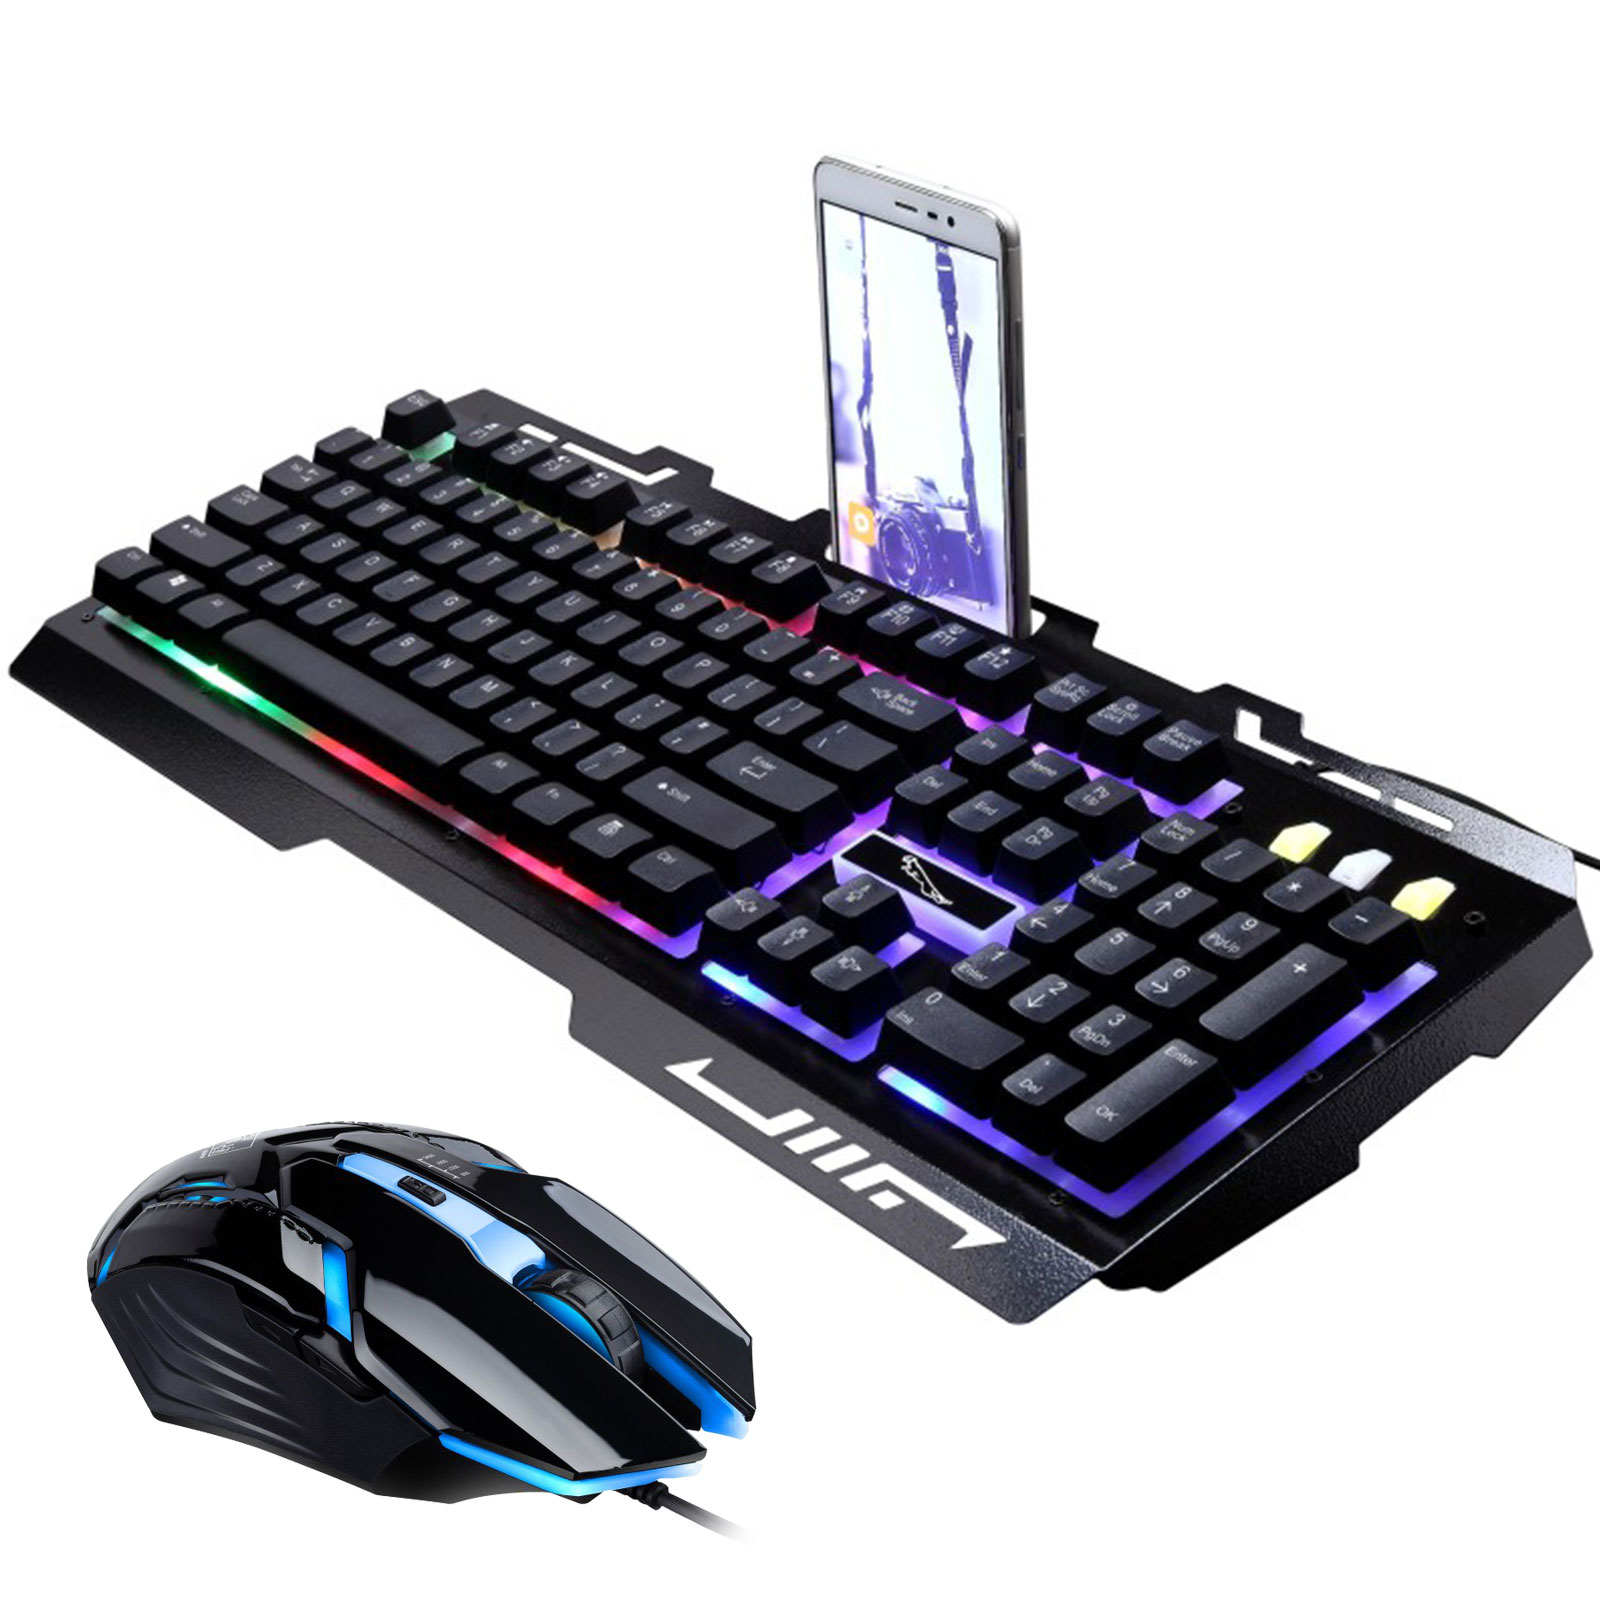 Keyboard Mouse Combo, TSV Gamer Wired Rainbow LED Backlit Metal Pro Gaming Keyboard and 2400DPI 6 Buttons Mouse for Laptop PC